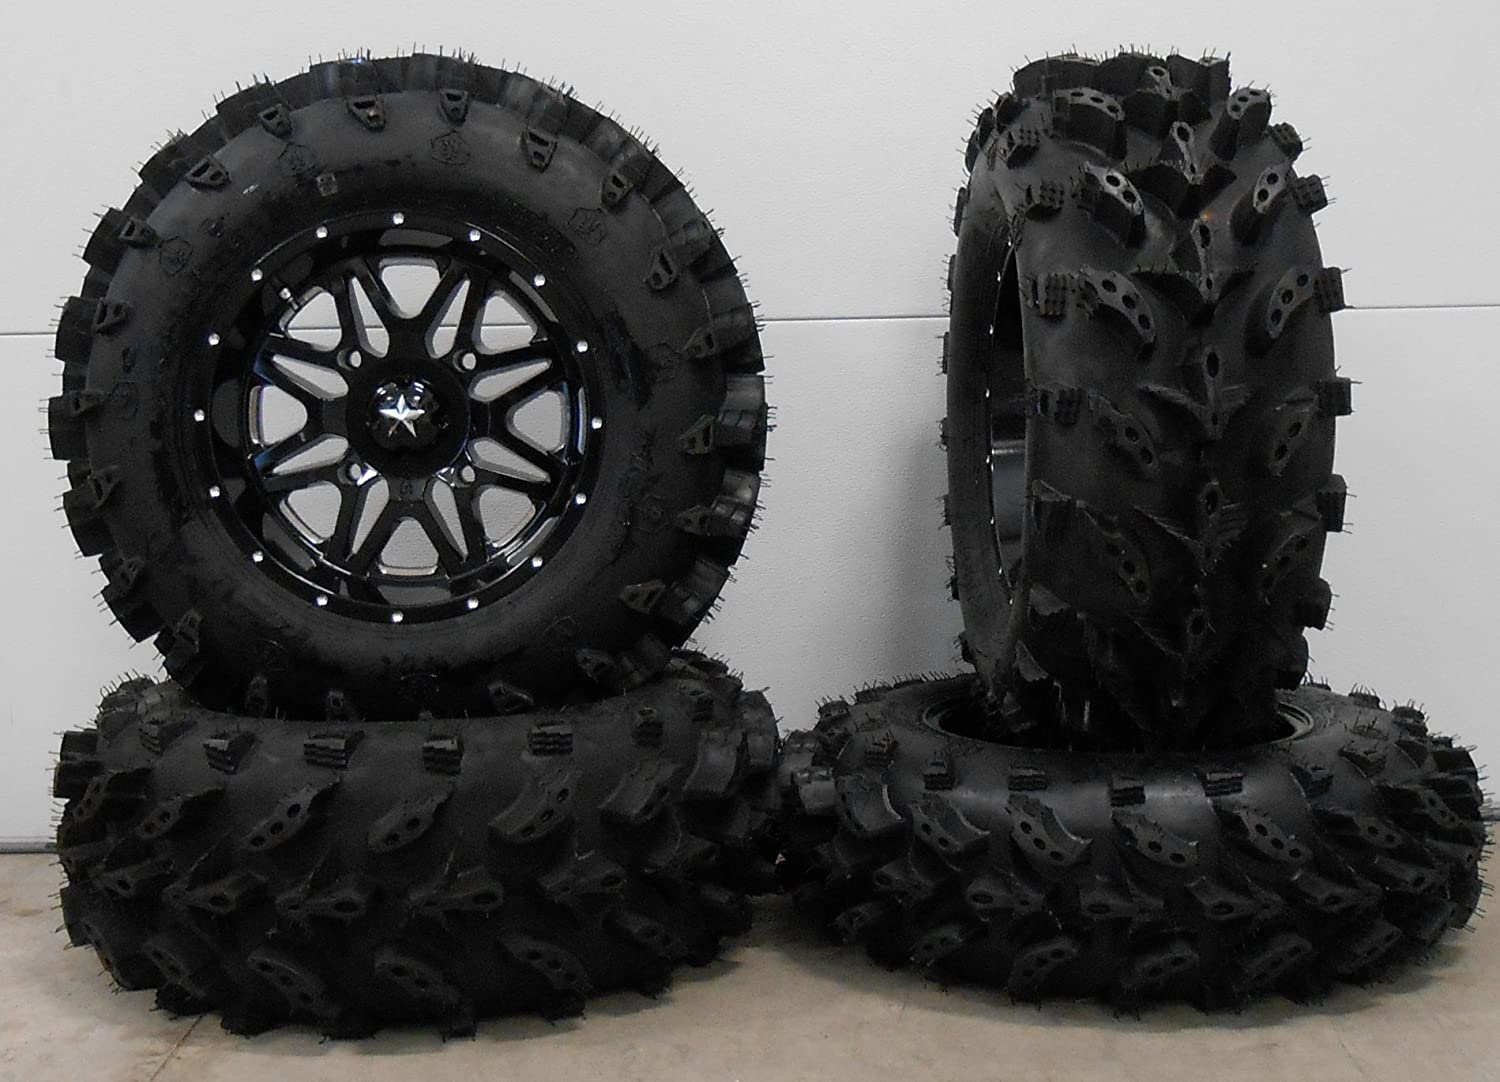 Bundle - 9 Items: MSA Black Vibe Wheels Outlet ☆ Popular brand in the world Free Shipping T Lite 14